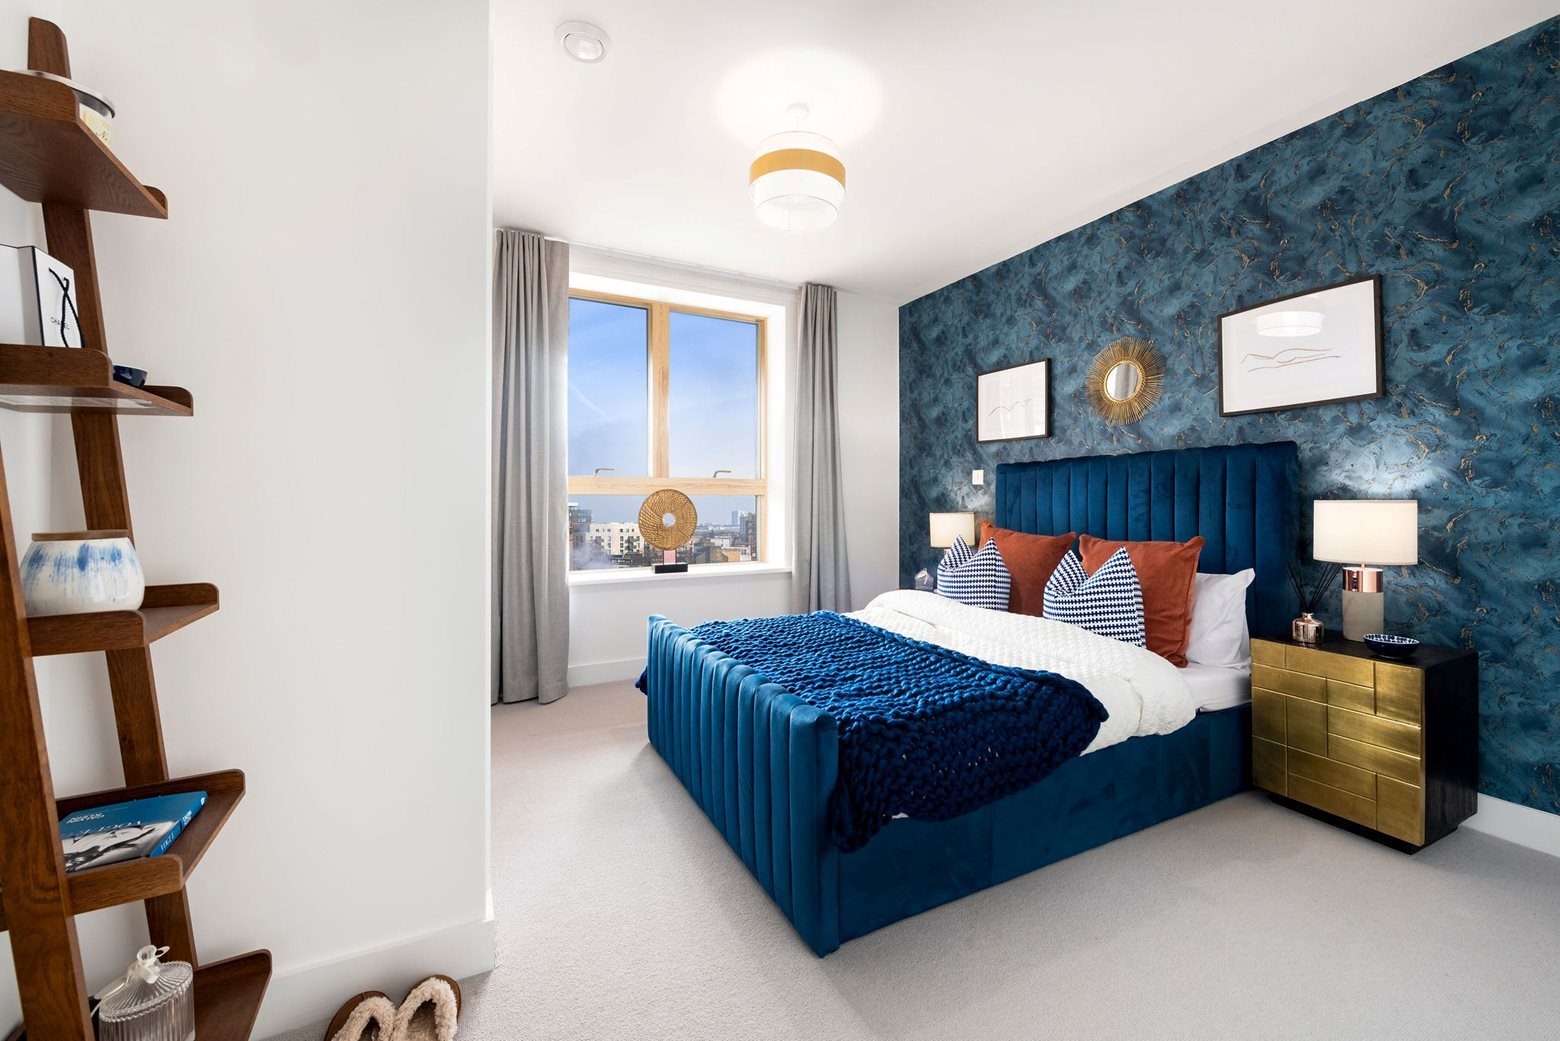 Bedroom at The Reach